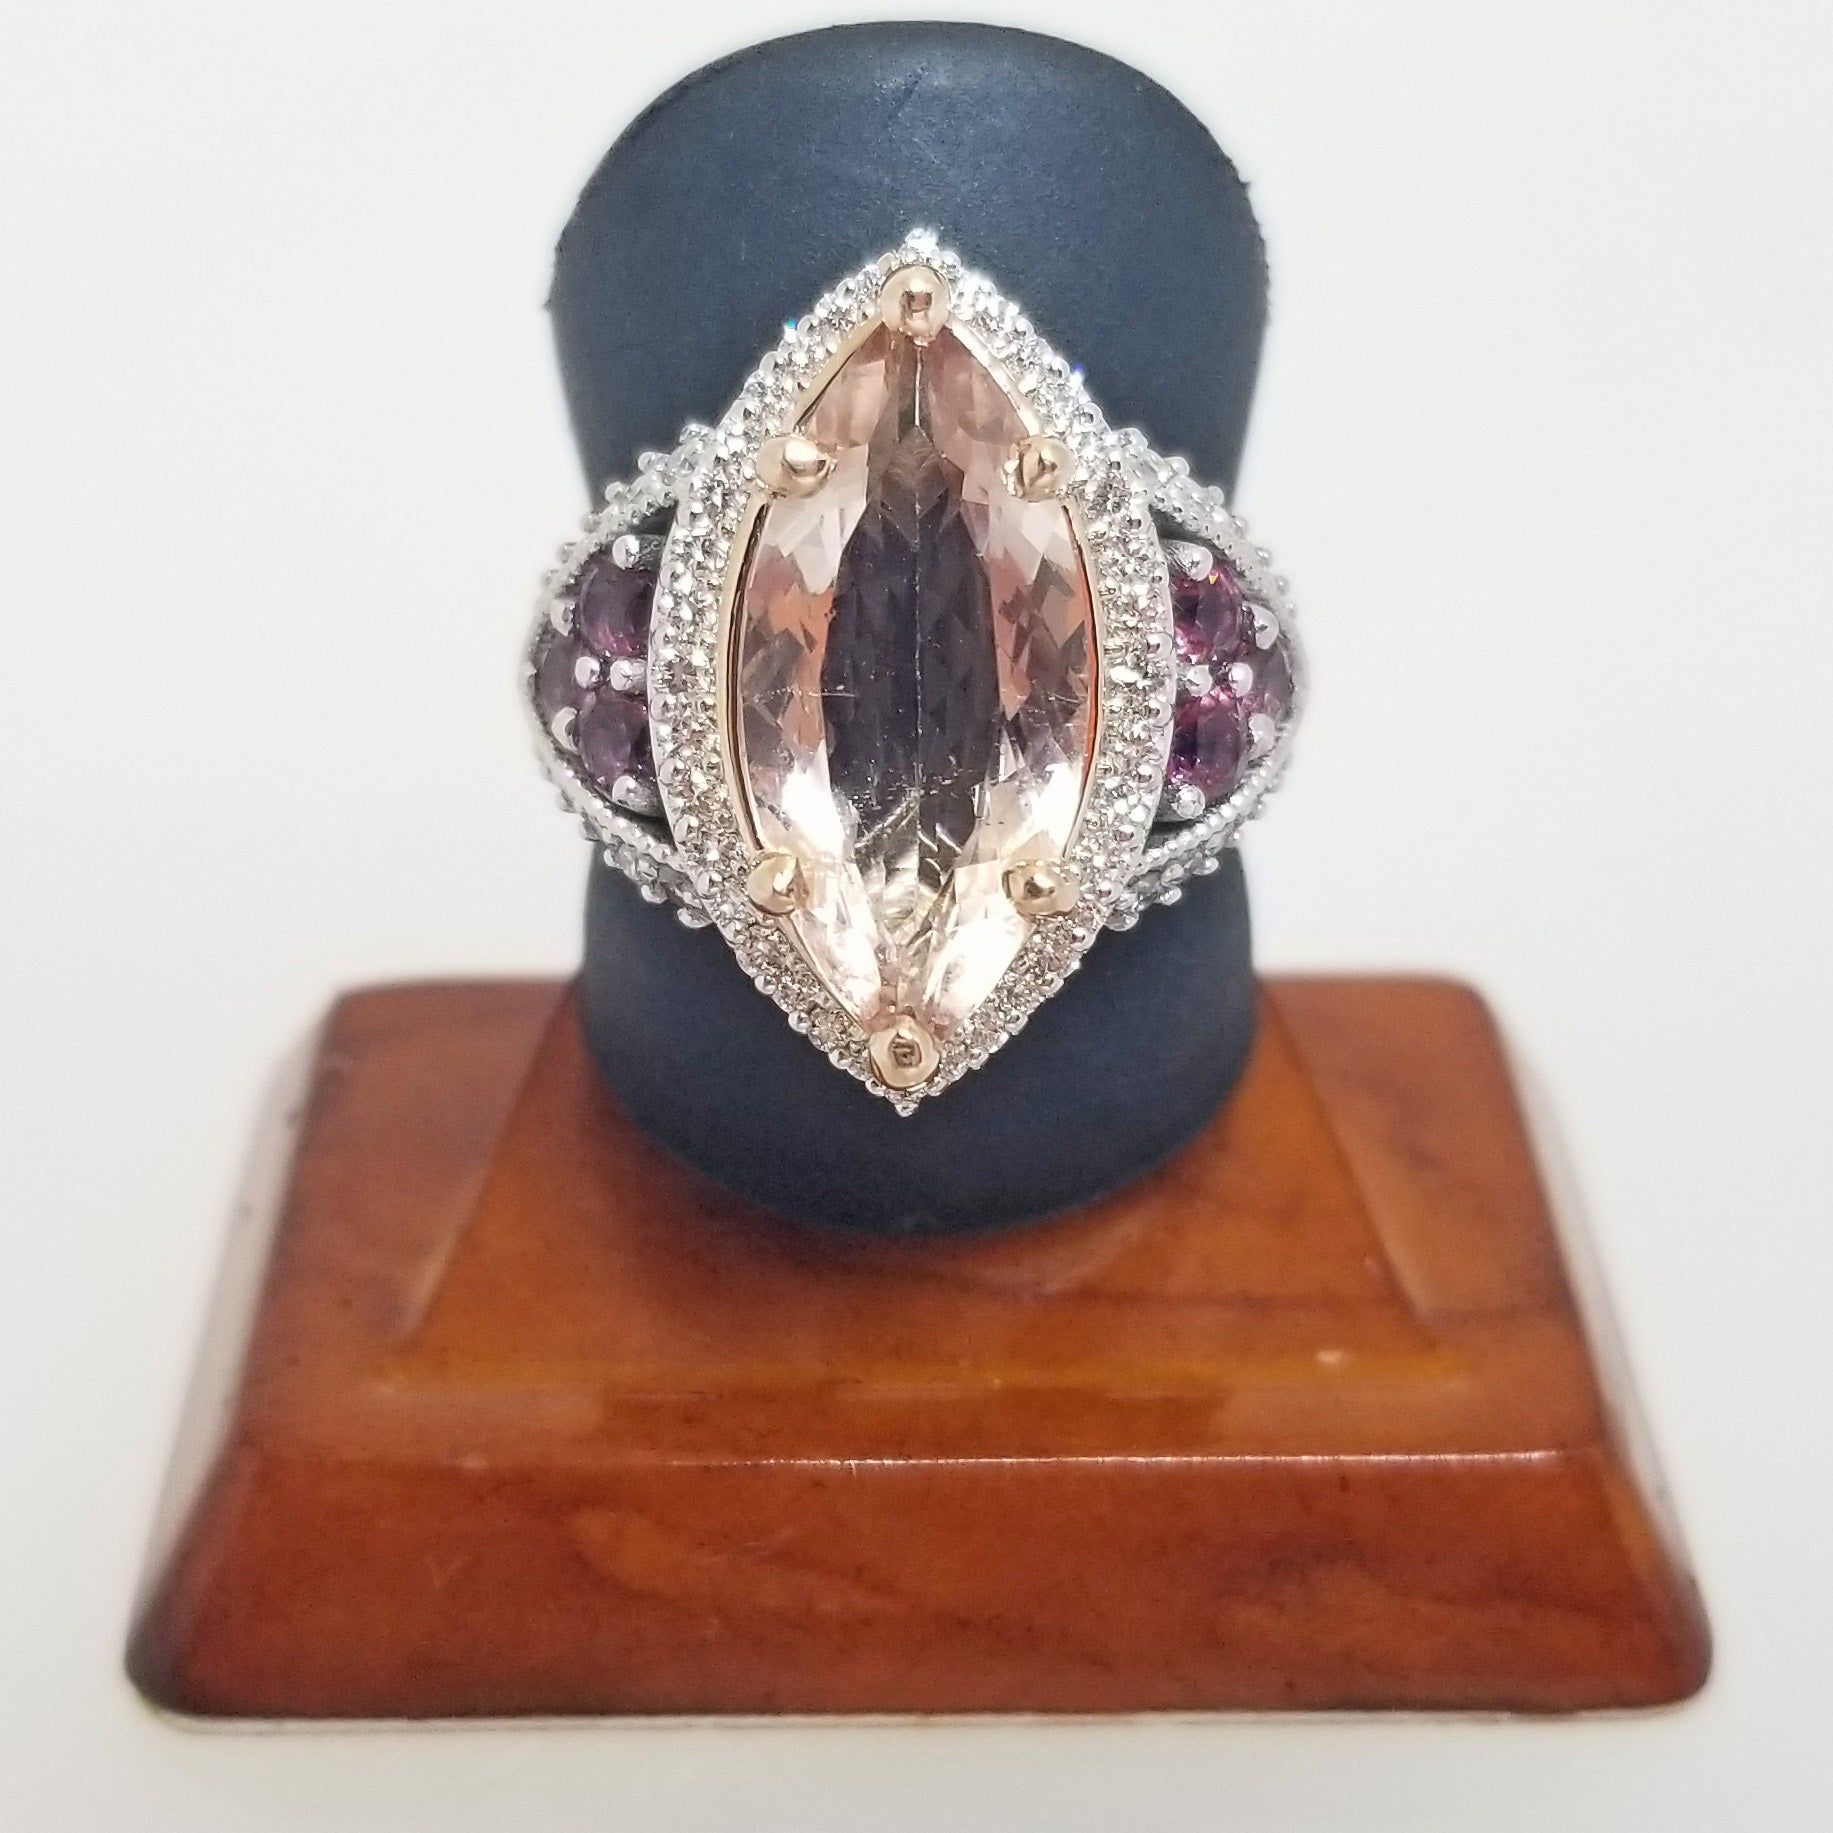 Ready to ship Morganite, rhodolite garnet, and diamond marquise ring in 14k rose and white gold